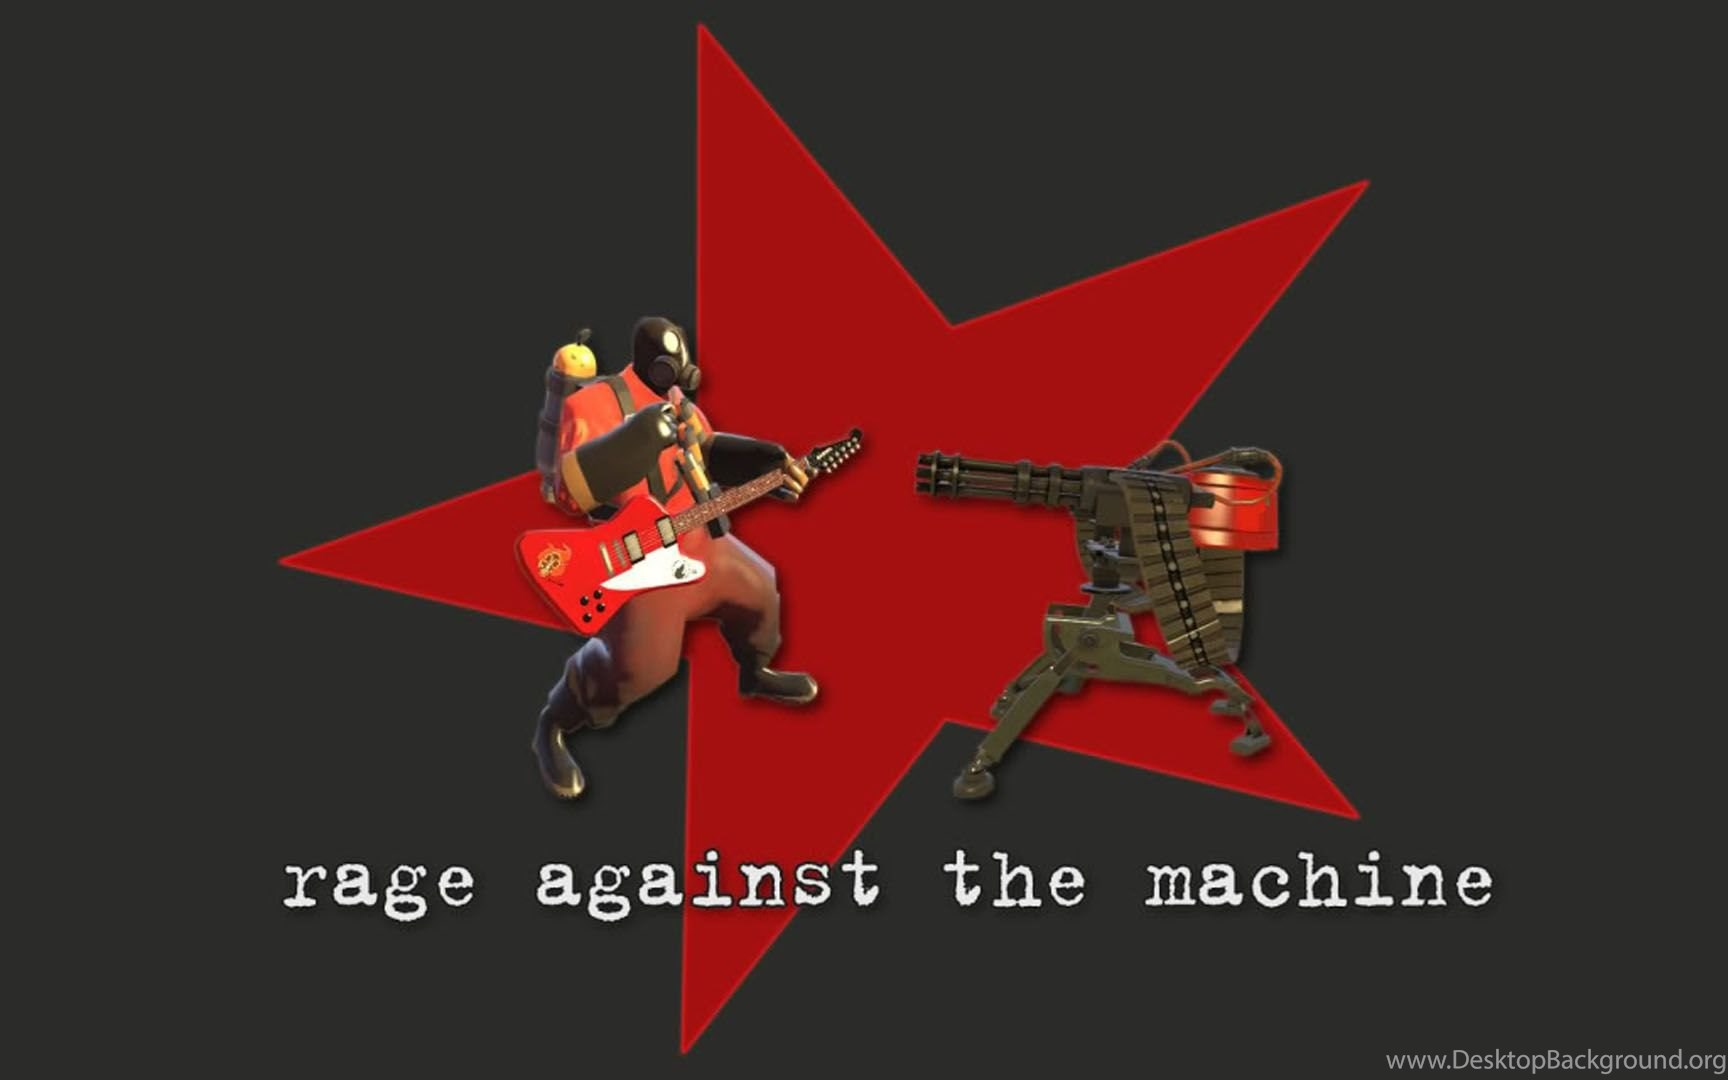 Rage Against The Machine Action Games Wallpapers Image Featuring